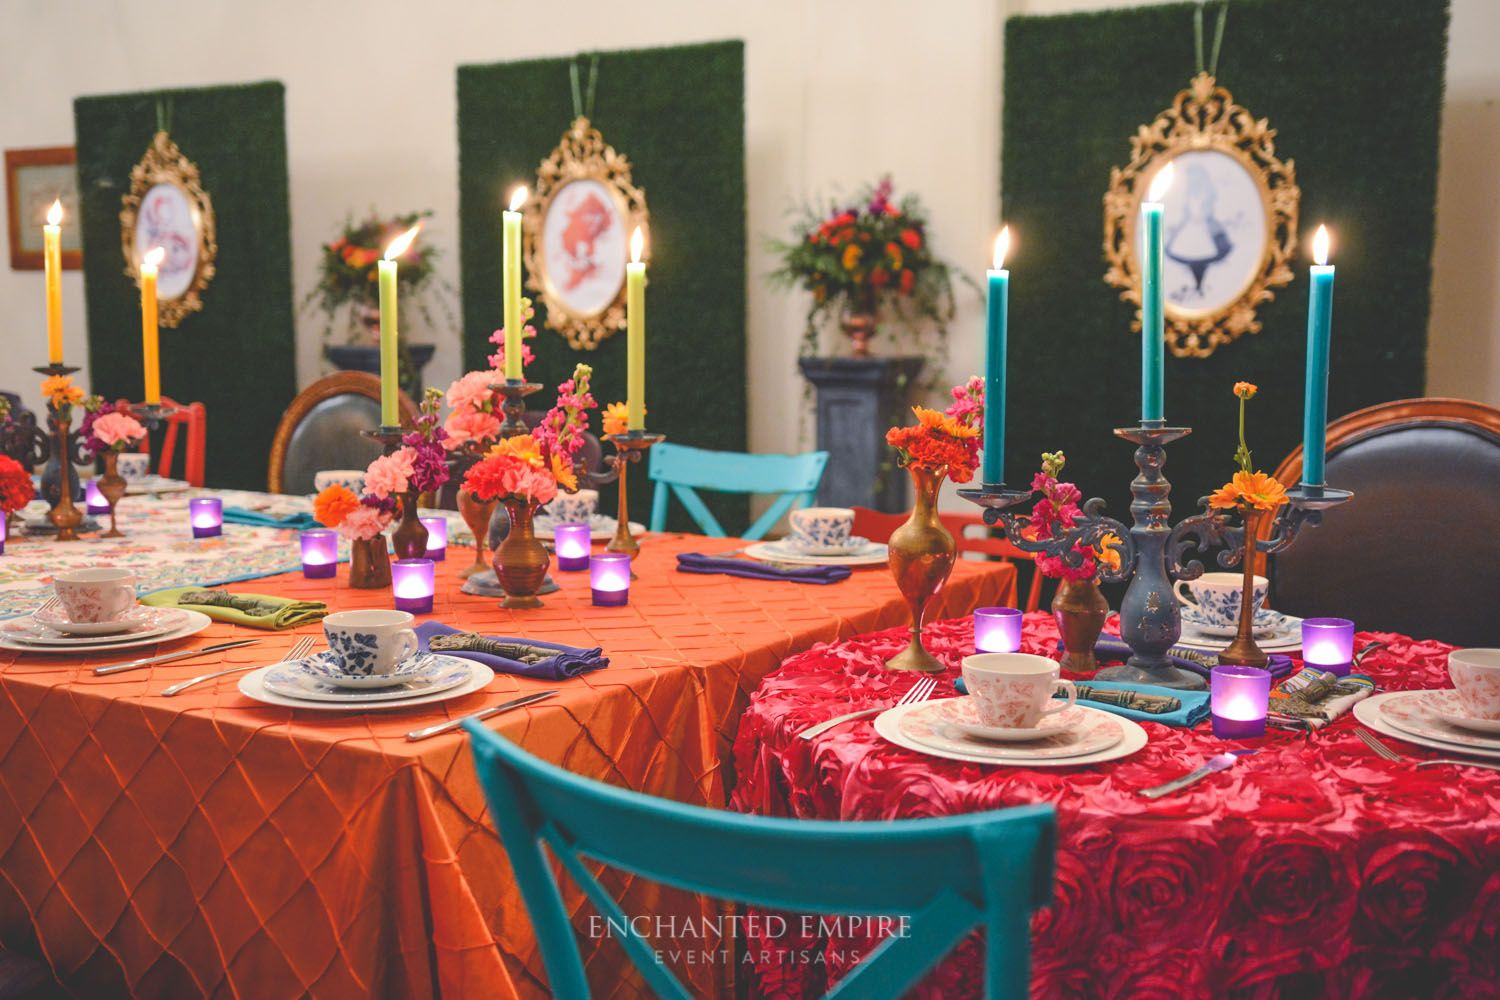 This Corporate Mad Hatteru0027s Tea Party Was Set With An Eclectic Mix Of  Coloured, Textured And Vibrant Table Linen. Drawing On Fun, Crazy And Mad  Elements Of ...